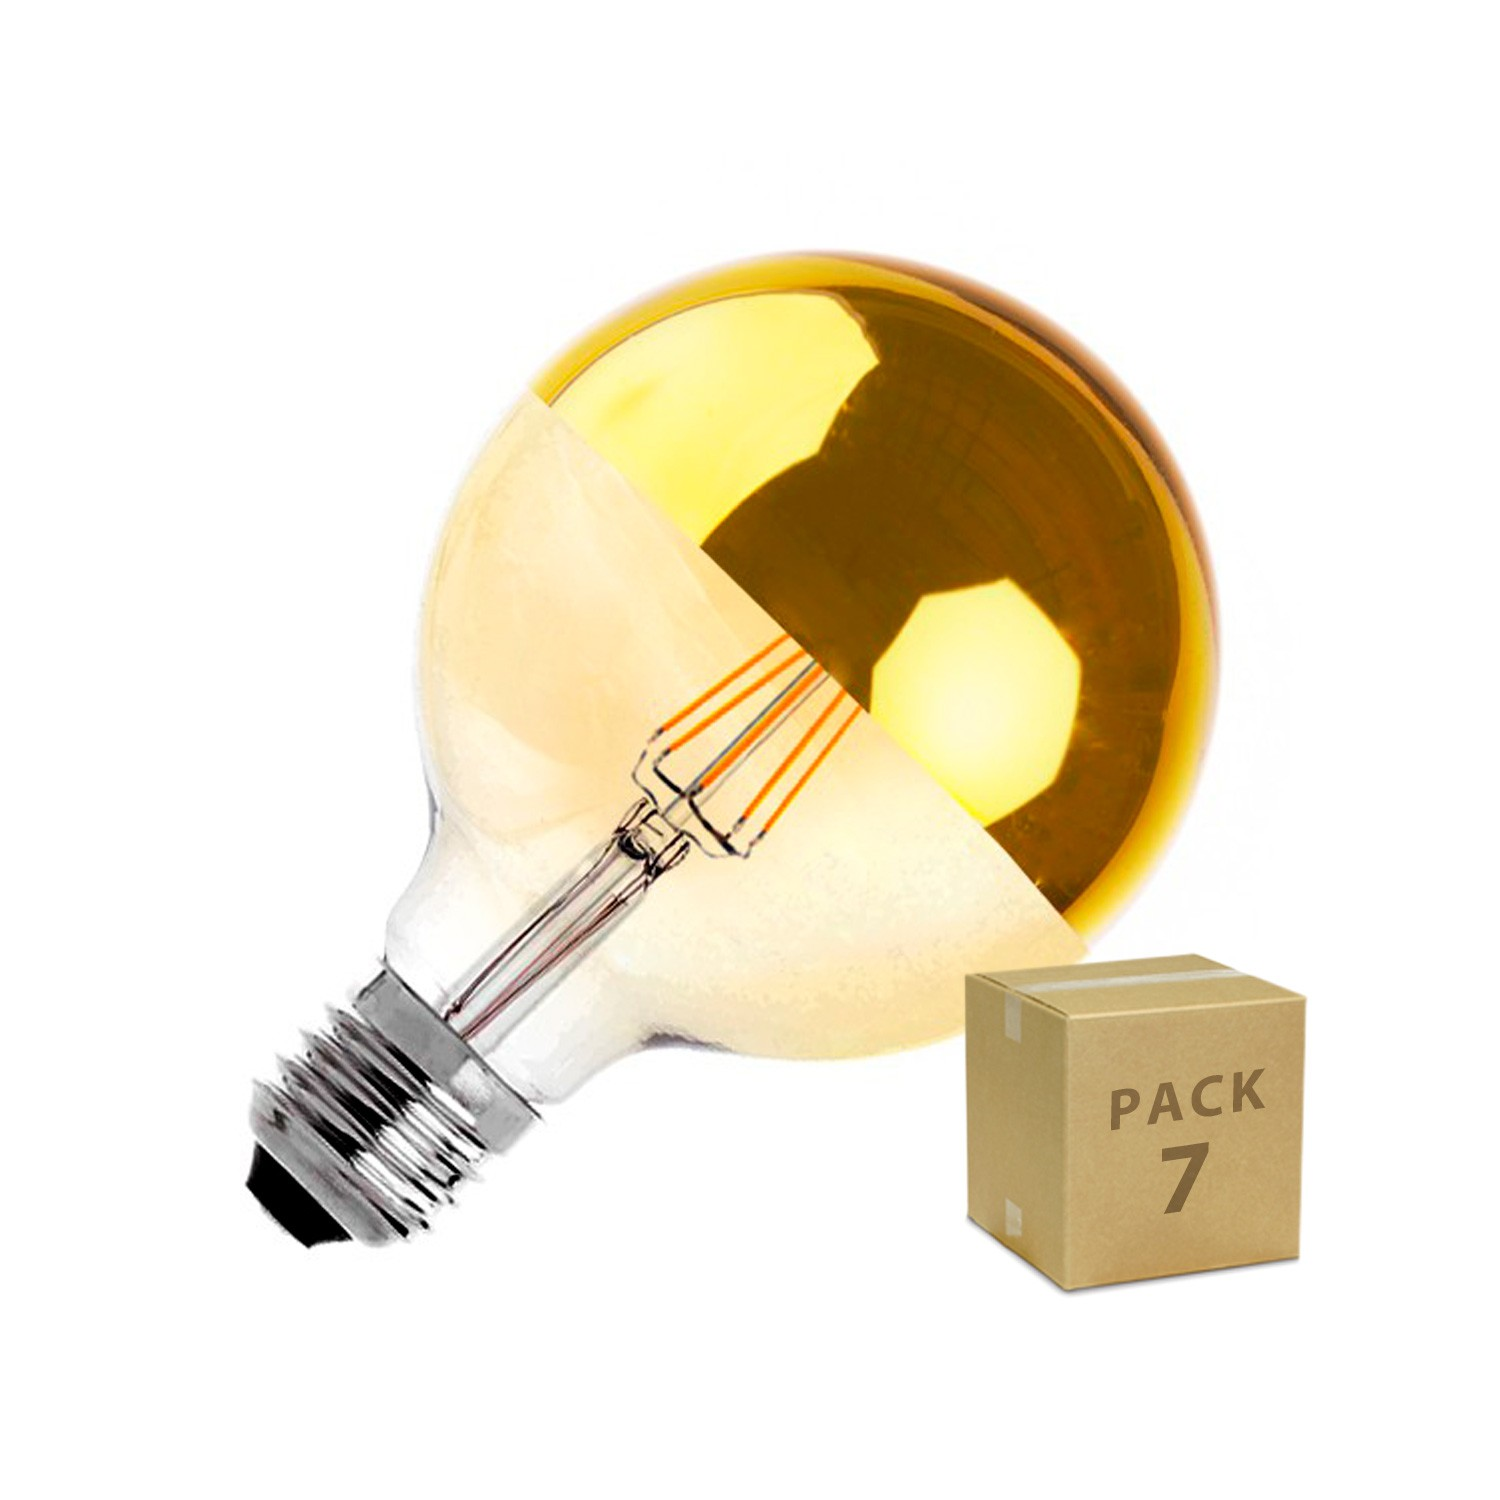 Lampe Gold Pack 7 Led Lampe E27 G125 6w Filament Reflect Supreme Gold Dimmbar